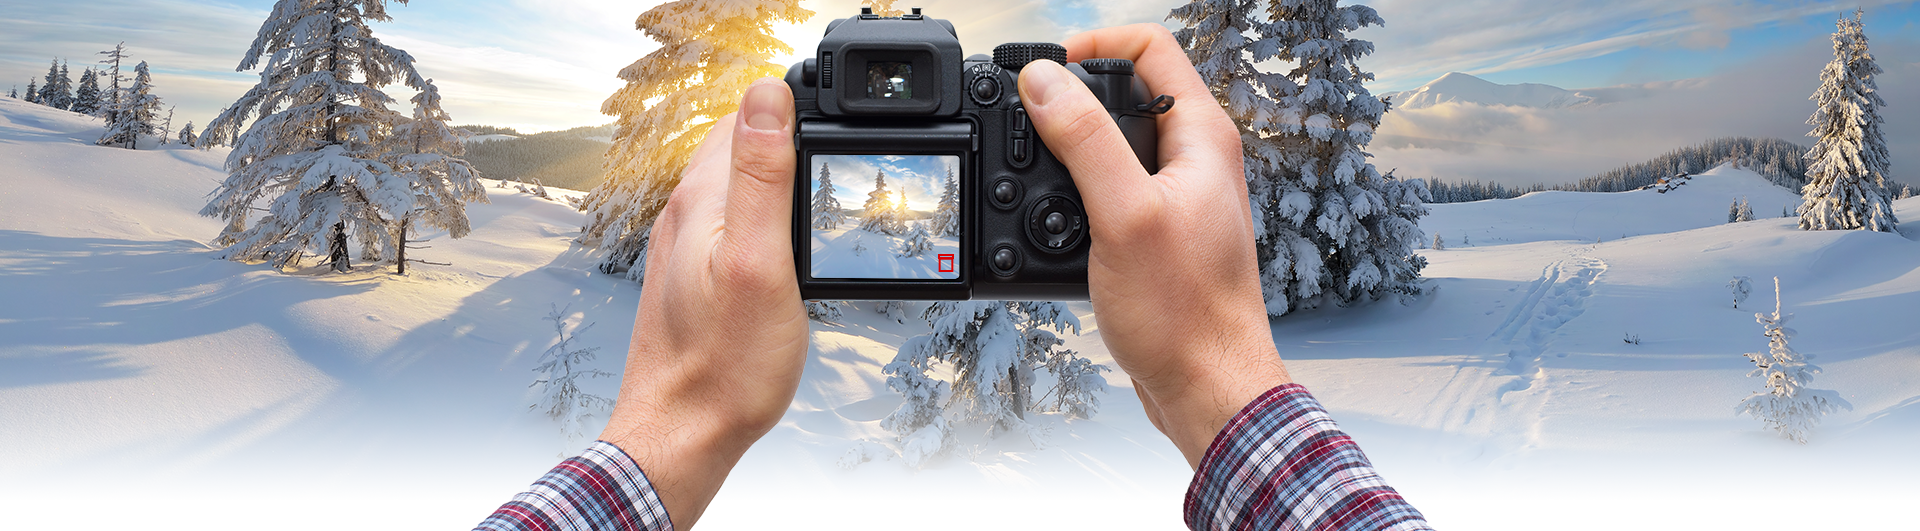 Photography Tips for Perfect Snowy Photos: Don't delete photos while outside